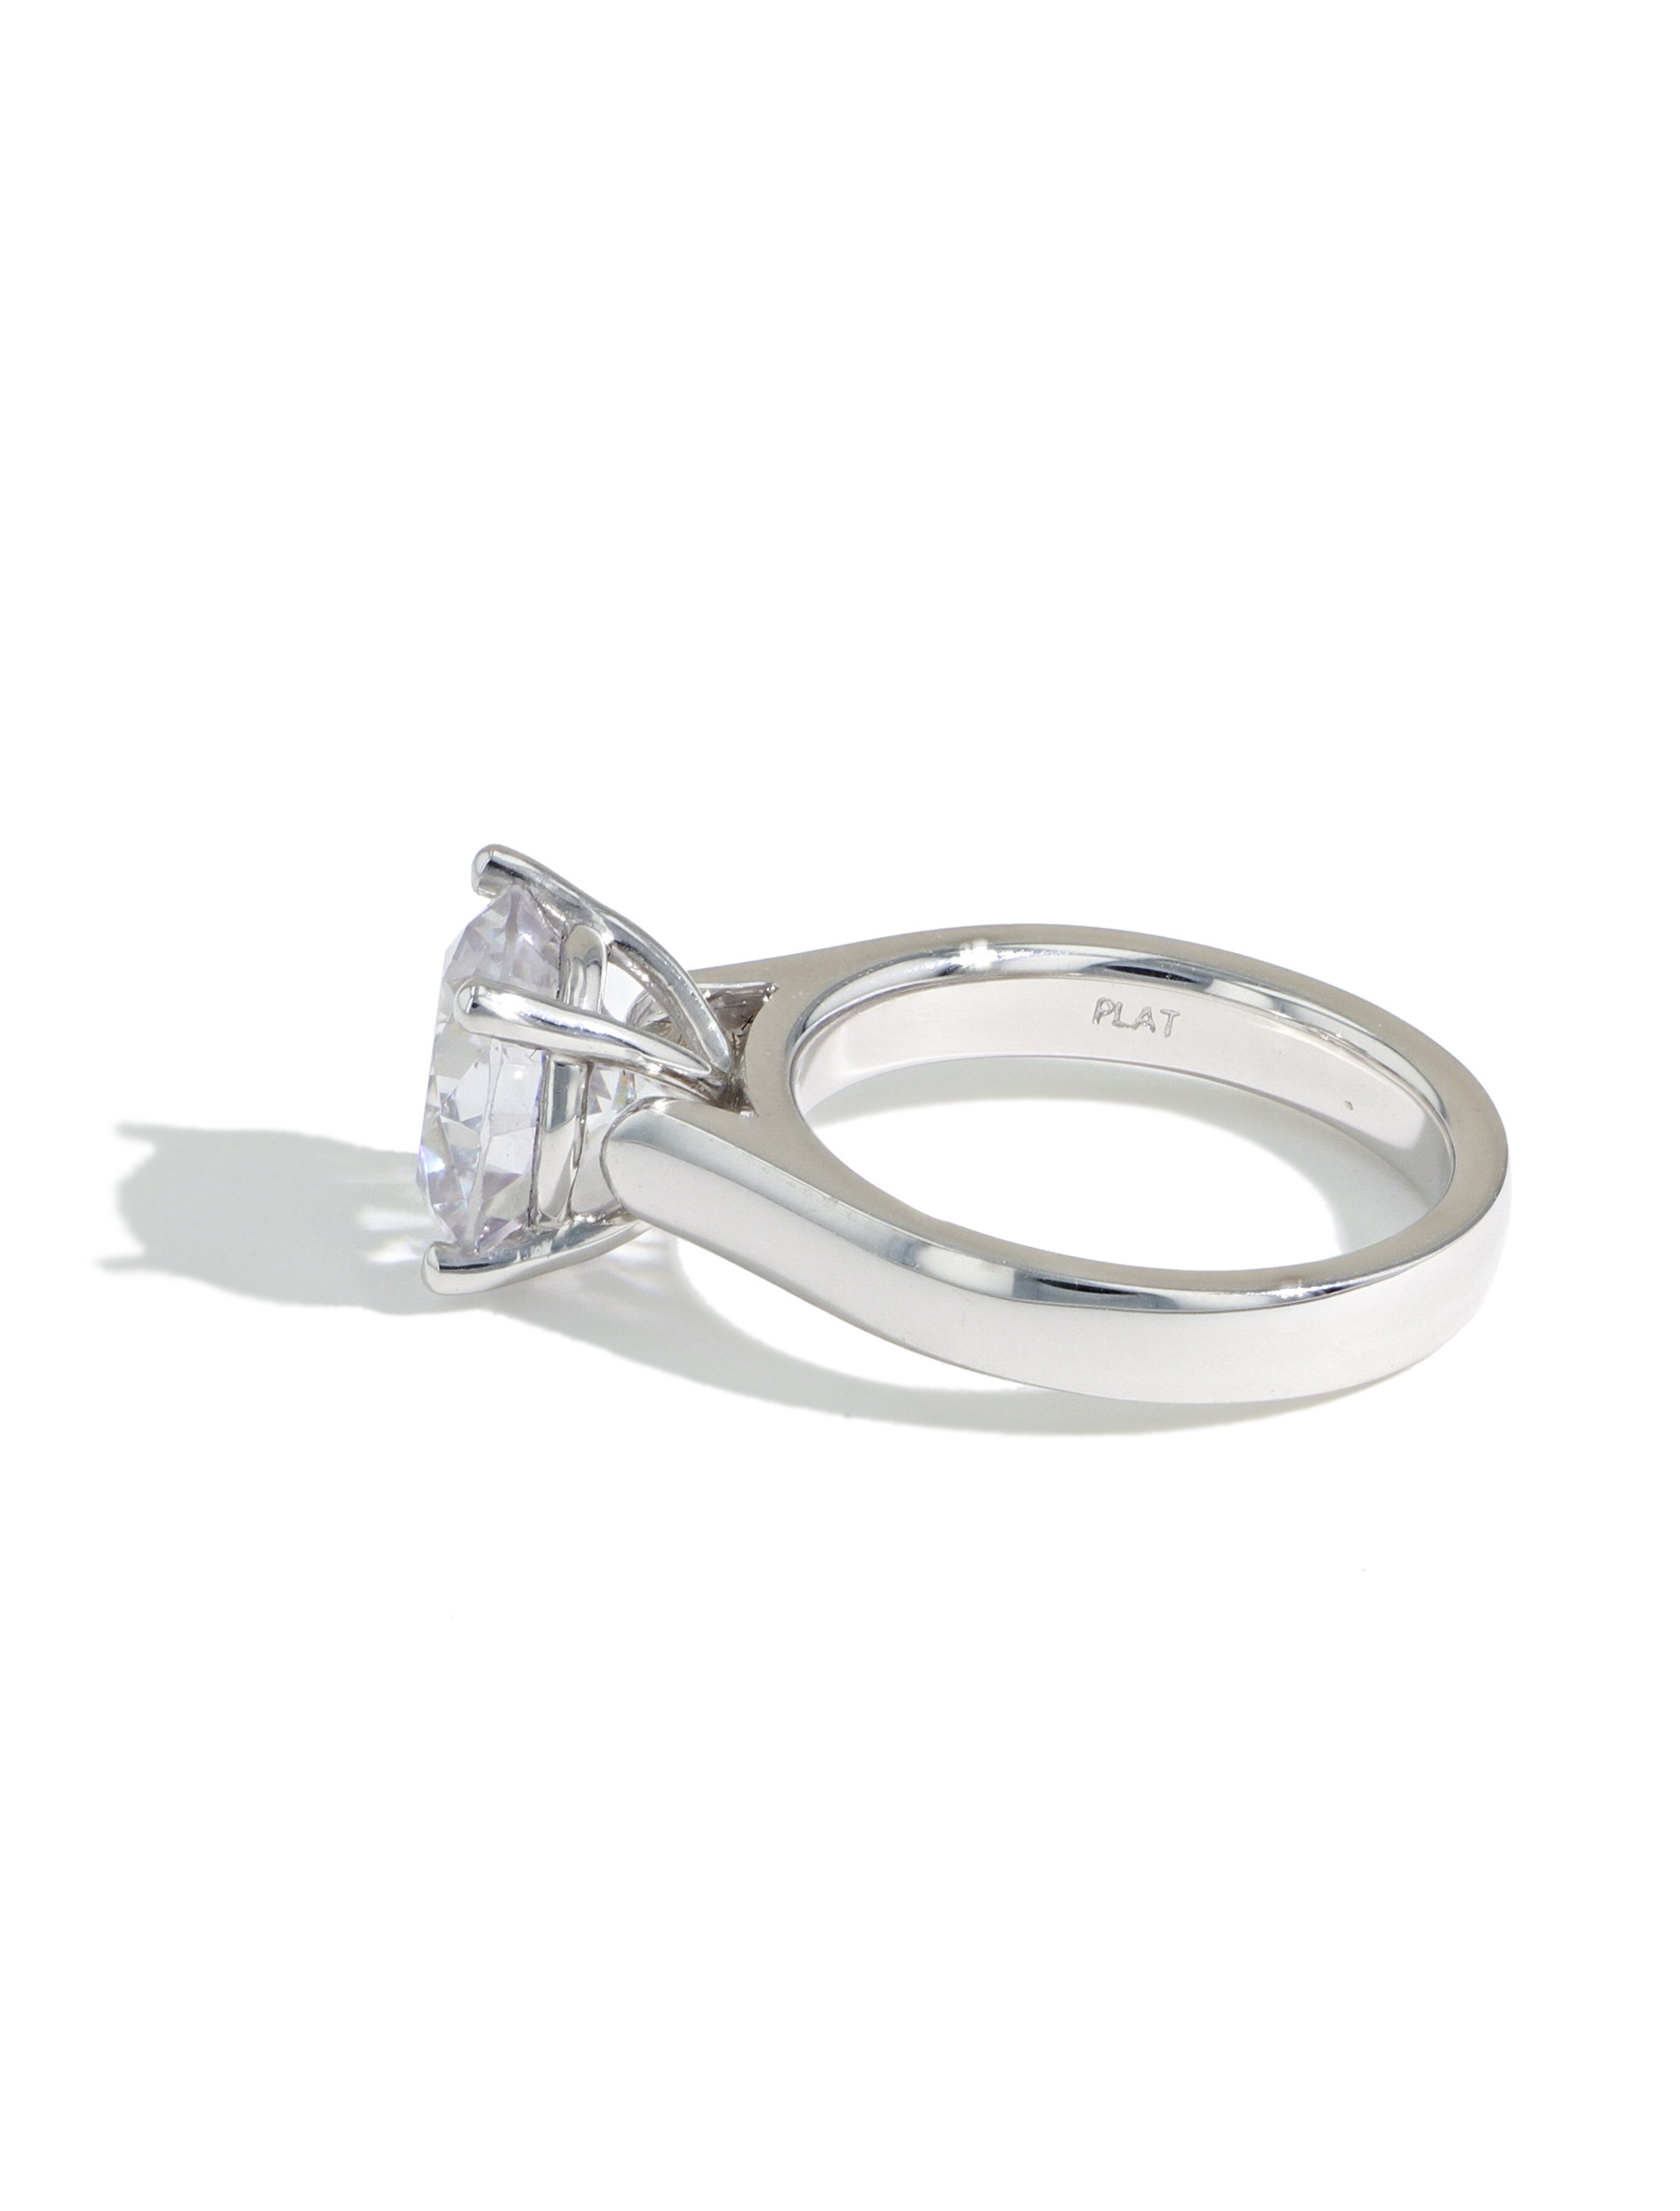 The Round Solitaire Engagement Ring Setting in Platinum side view